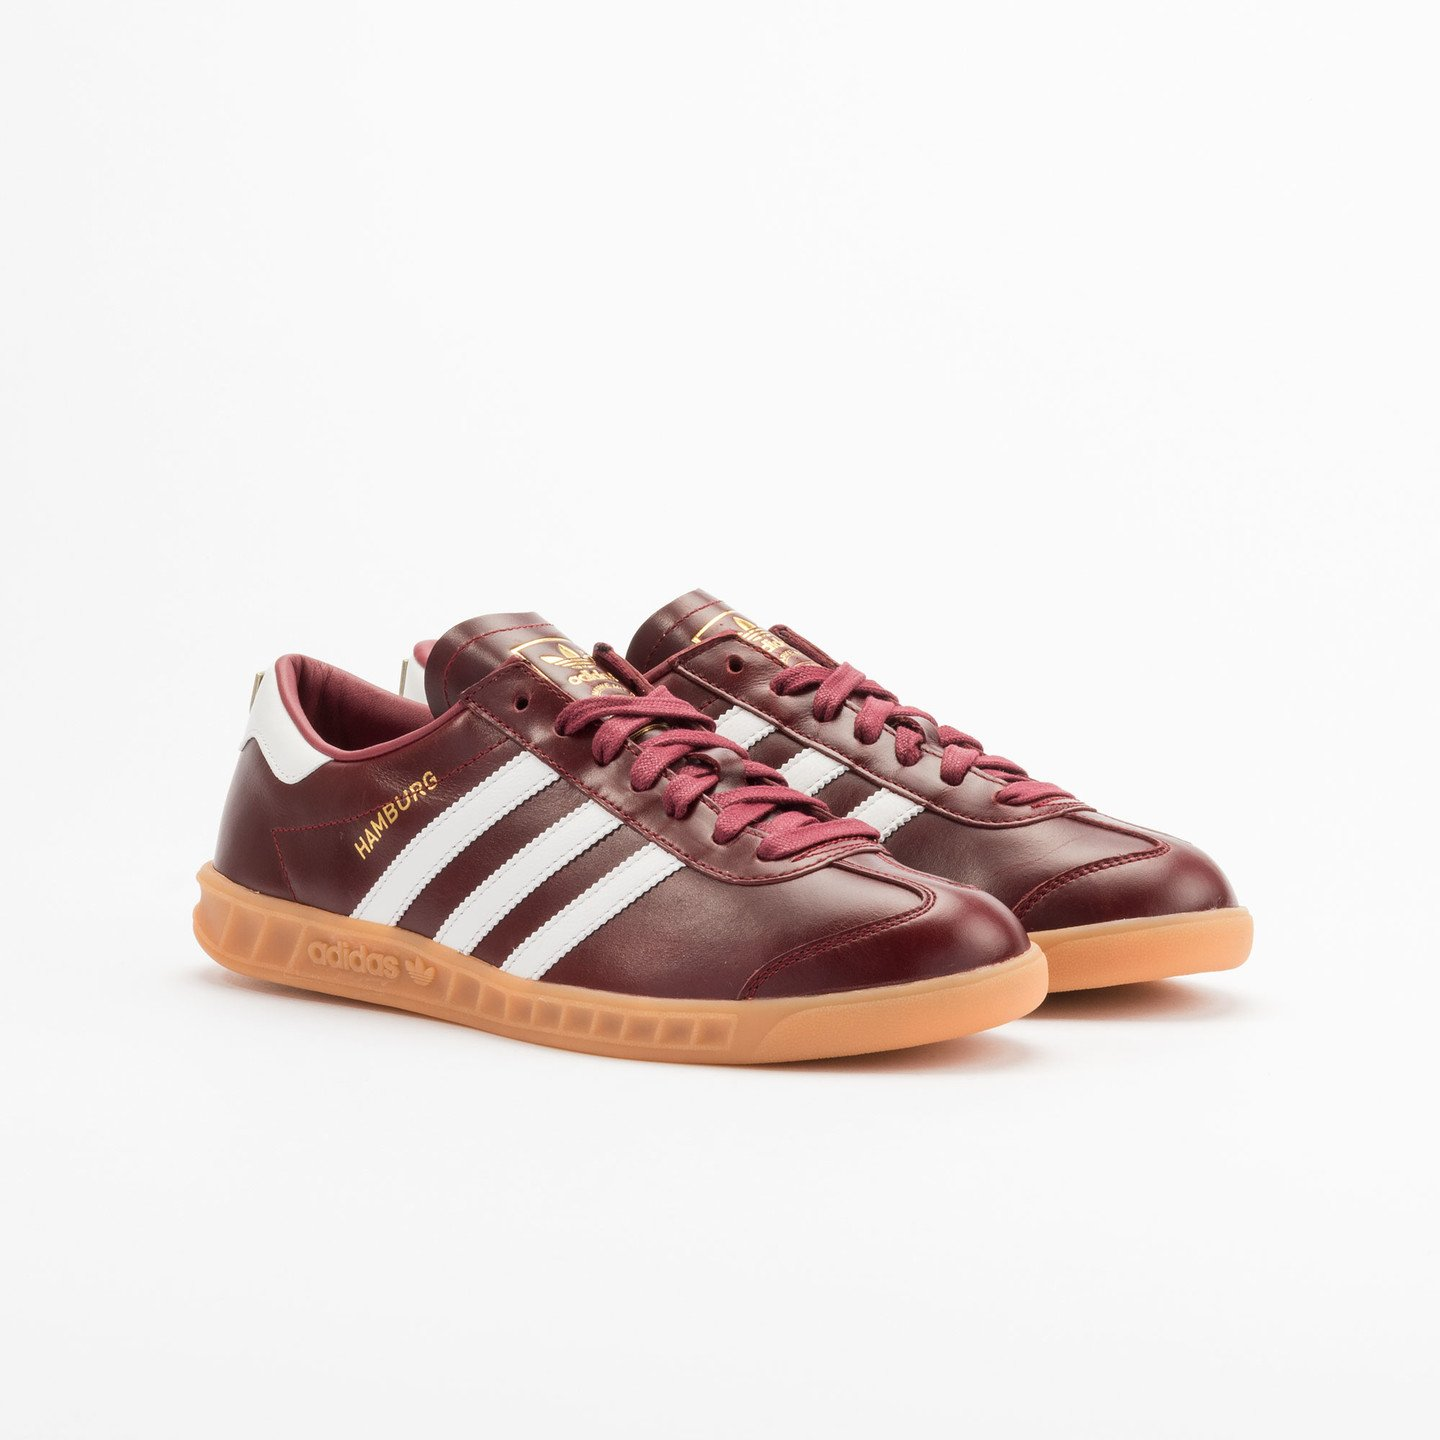 Adidas Hamburg - Made in Germany Burgundy / White / Gold / Gum S31603-45.33